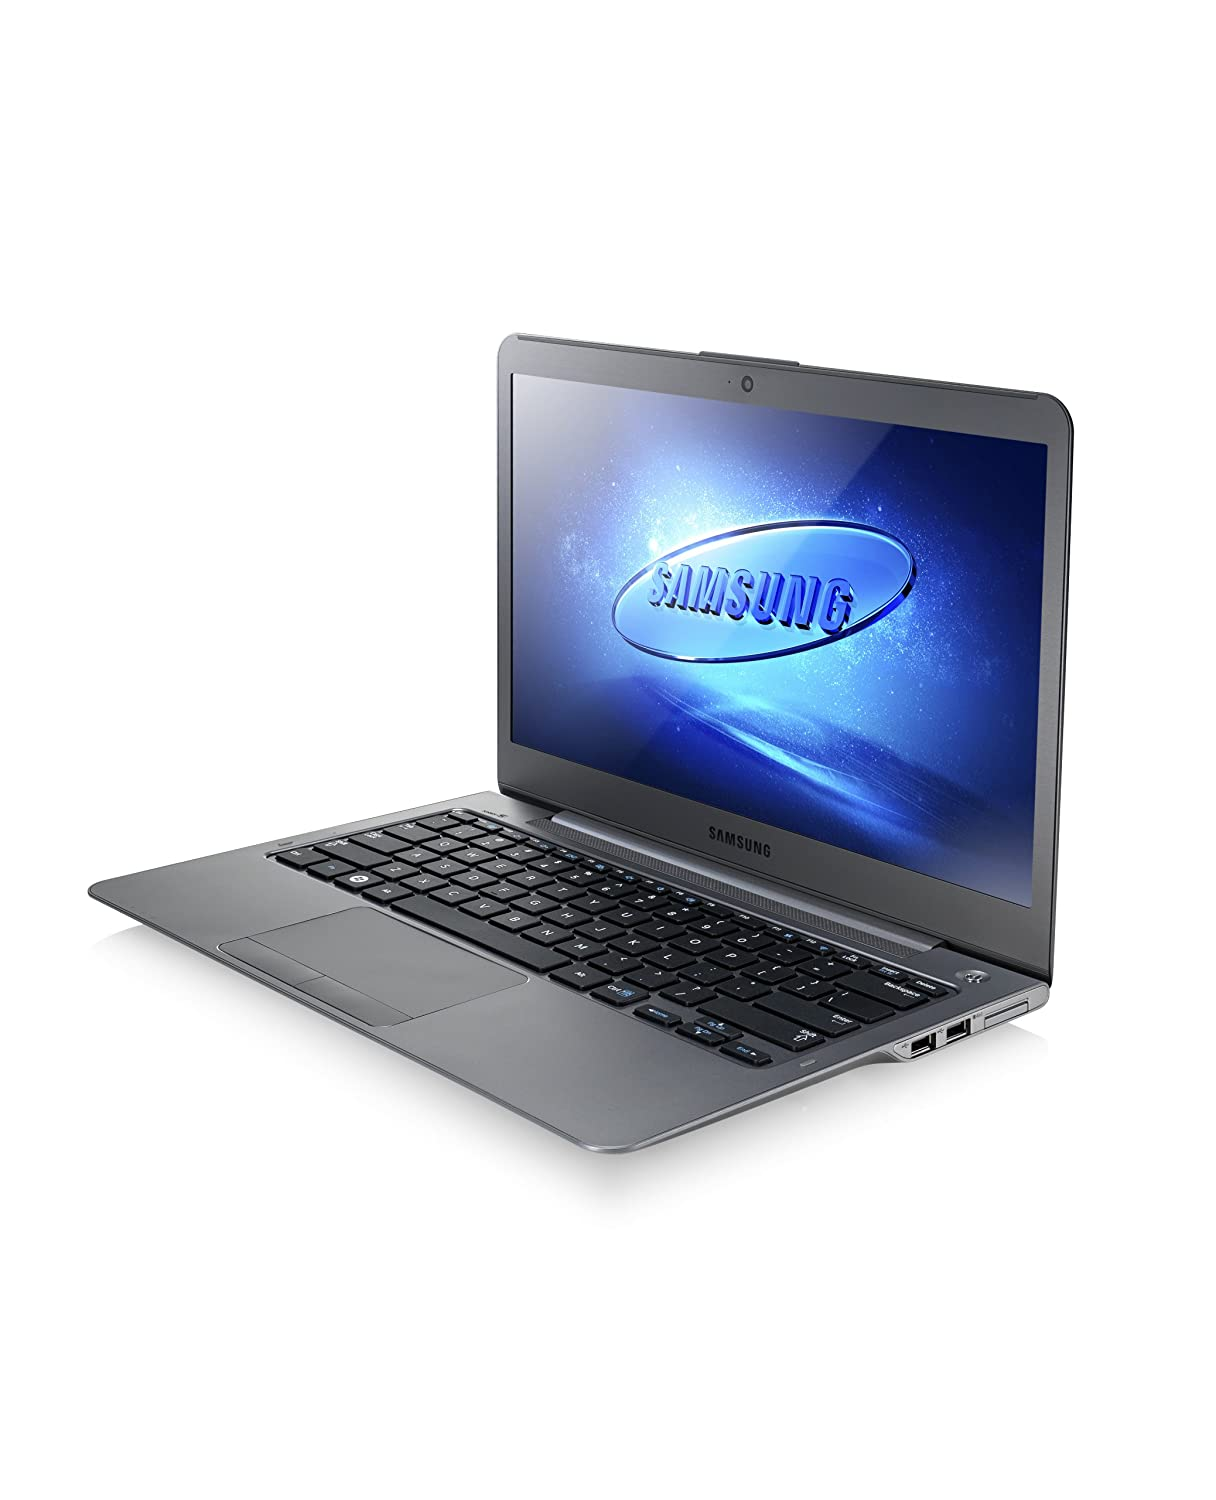 Samsung NP535U3C Notebook WLAN Drivers Download Free